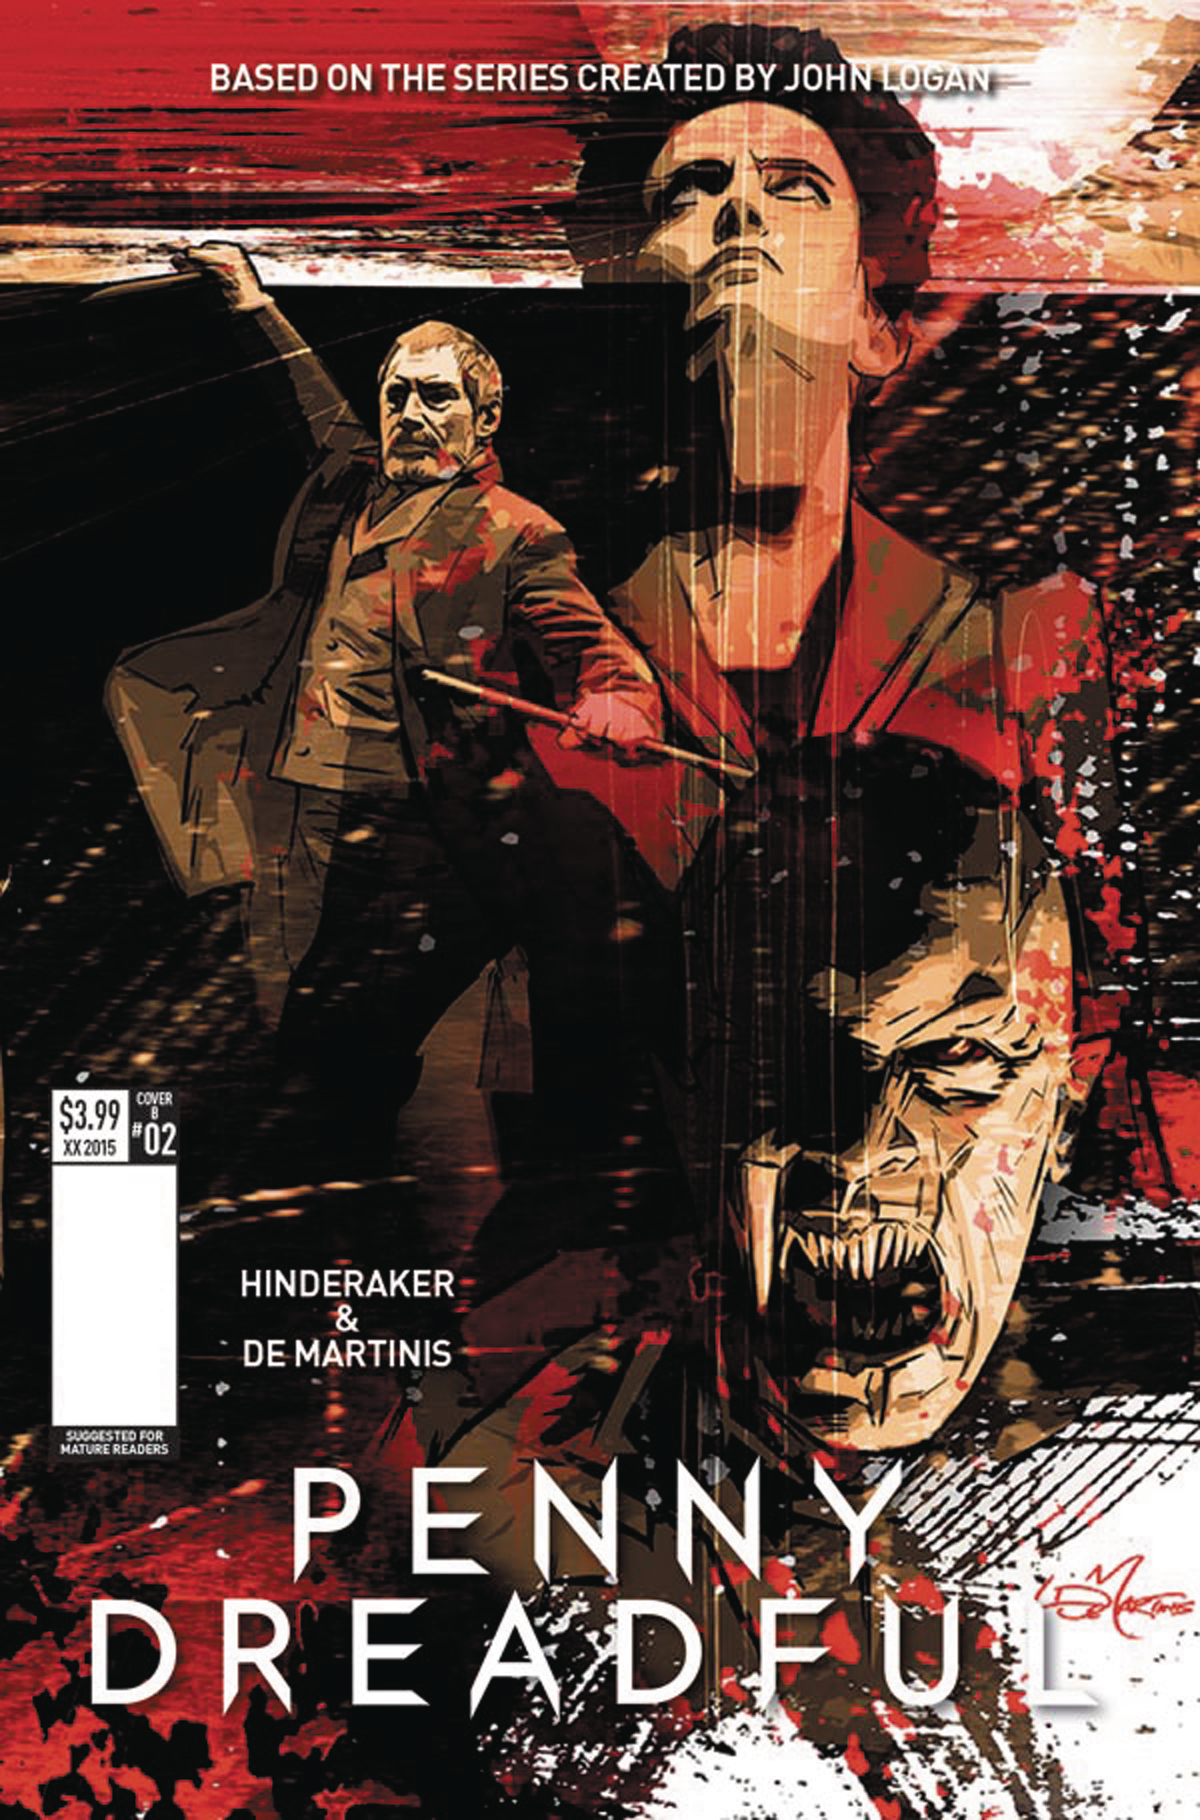 PENNY DREADFUL #2 (OF 5) CVR B DE MARTINIS (MR)